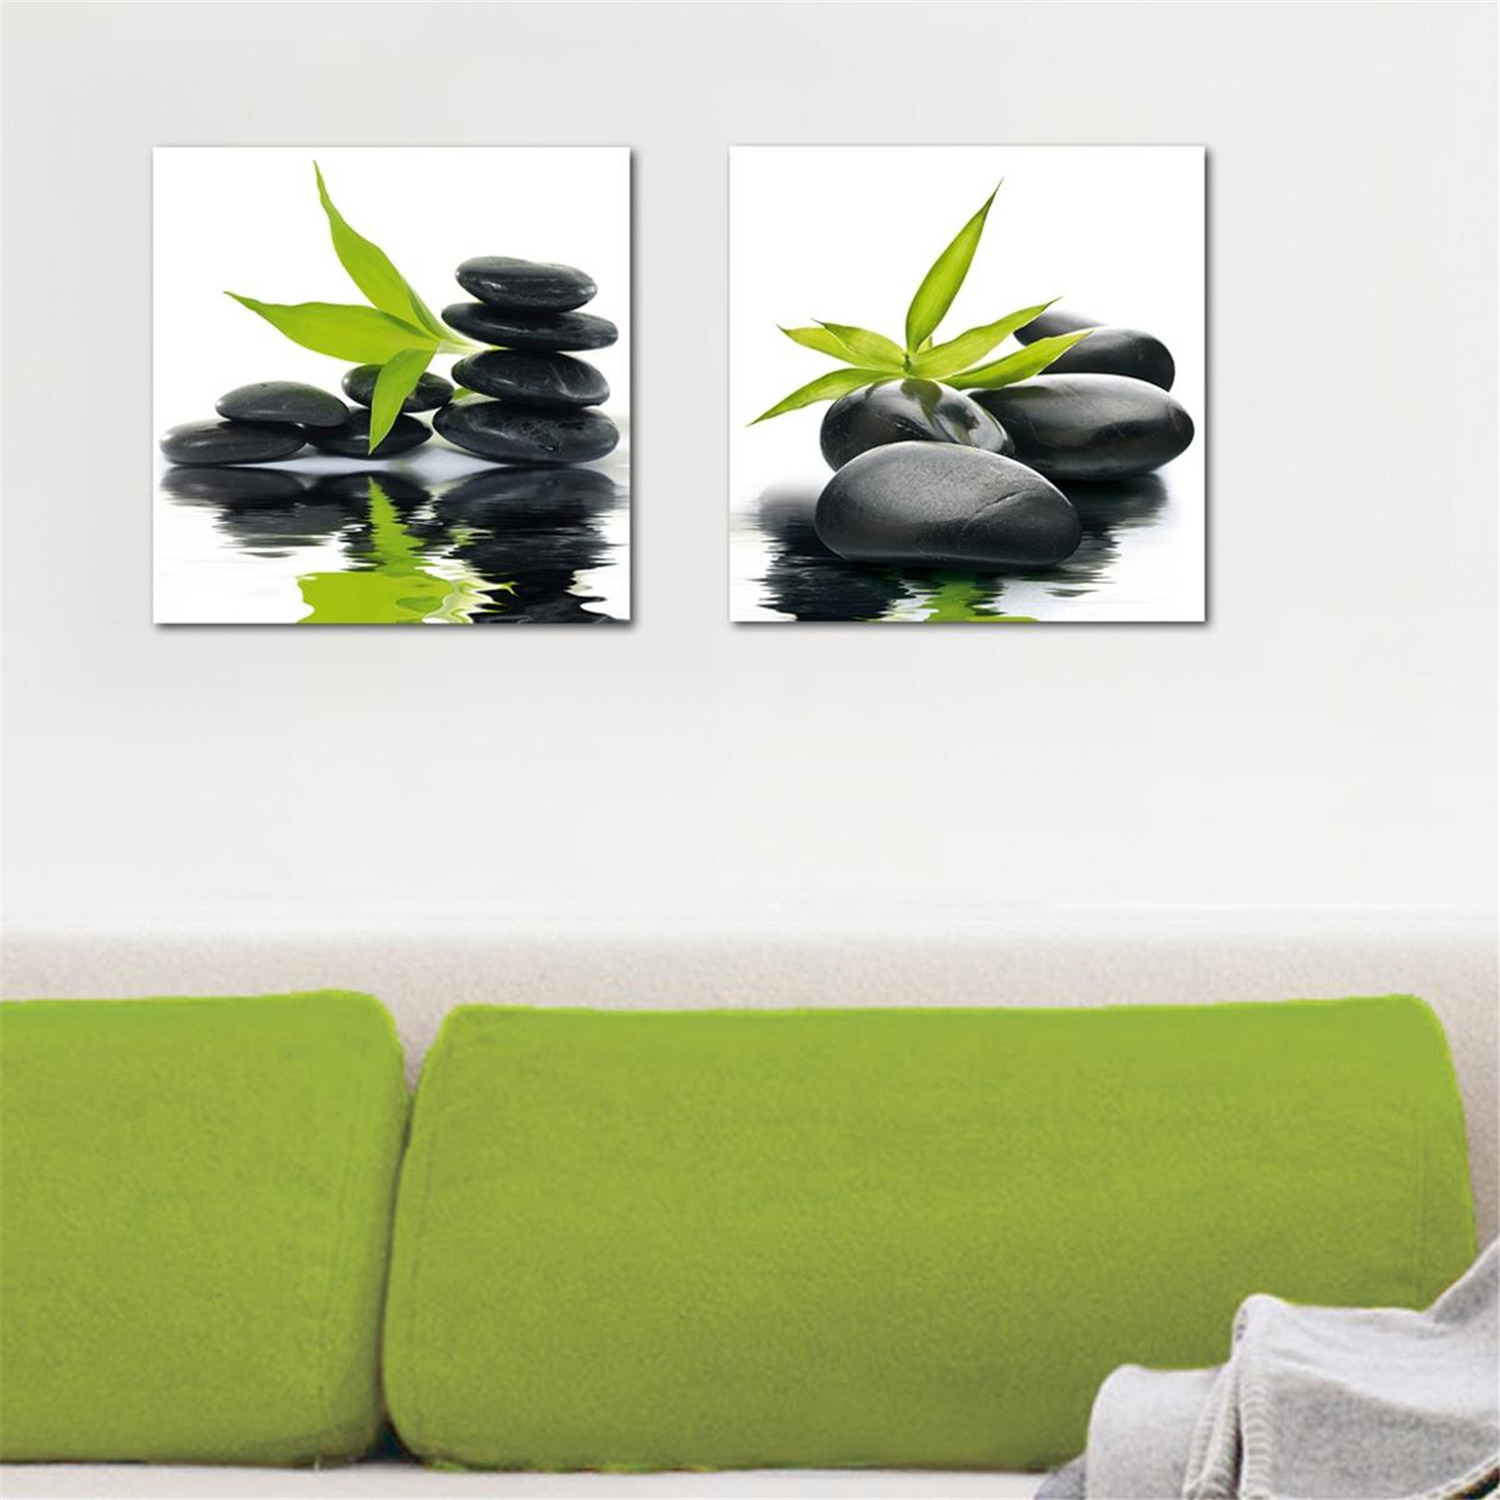 Zen Bathroom Wall Art